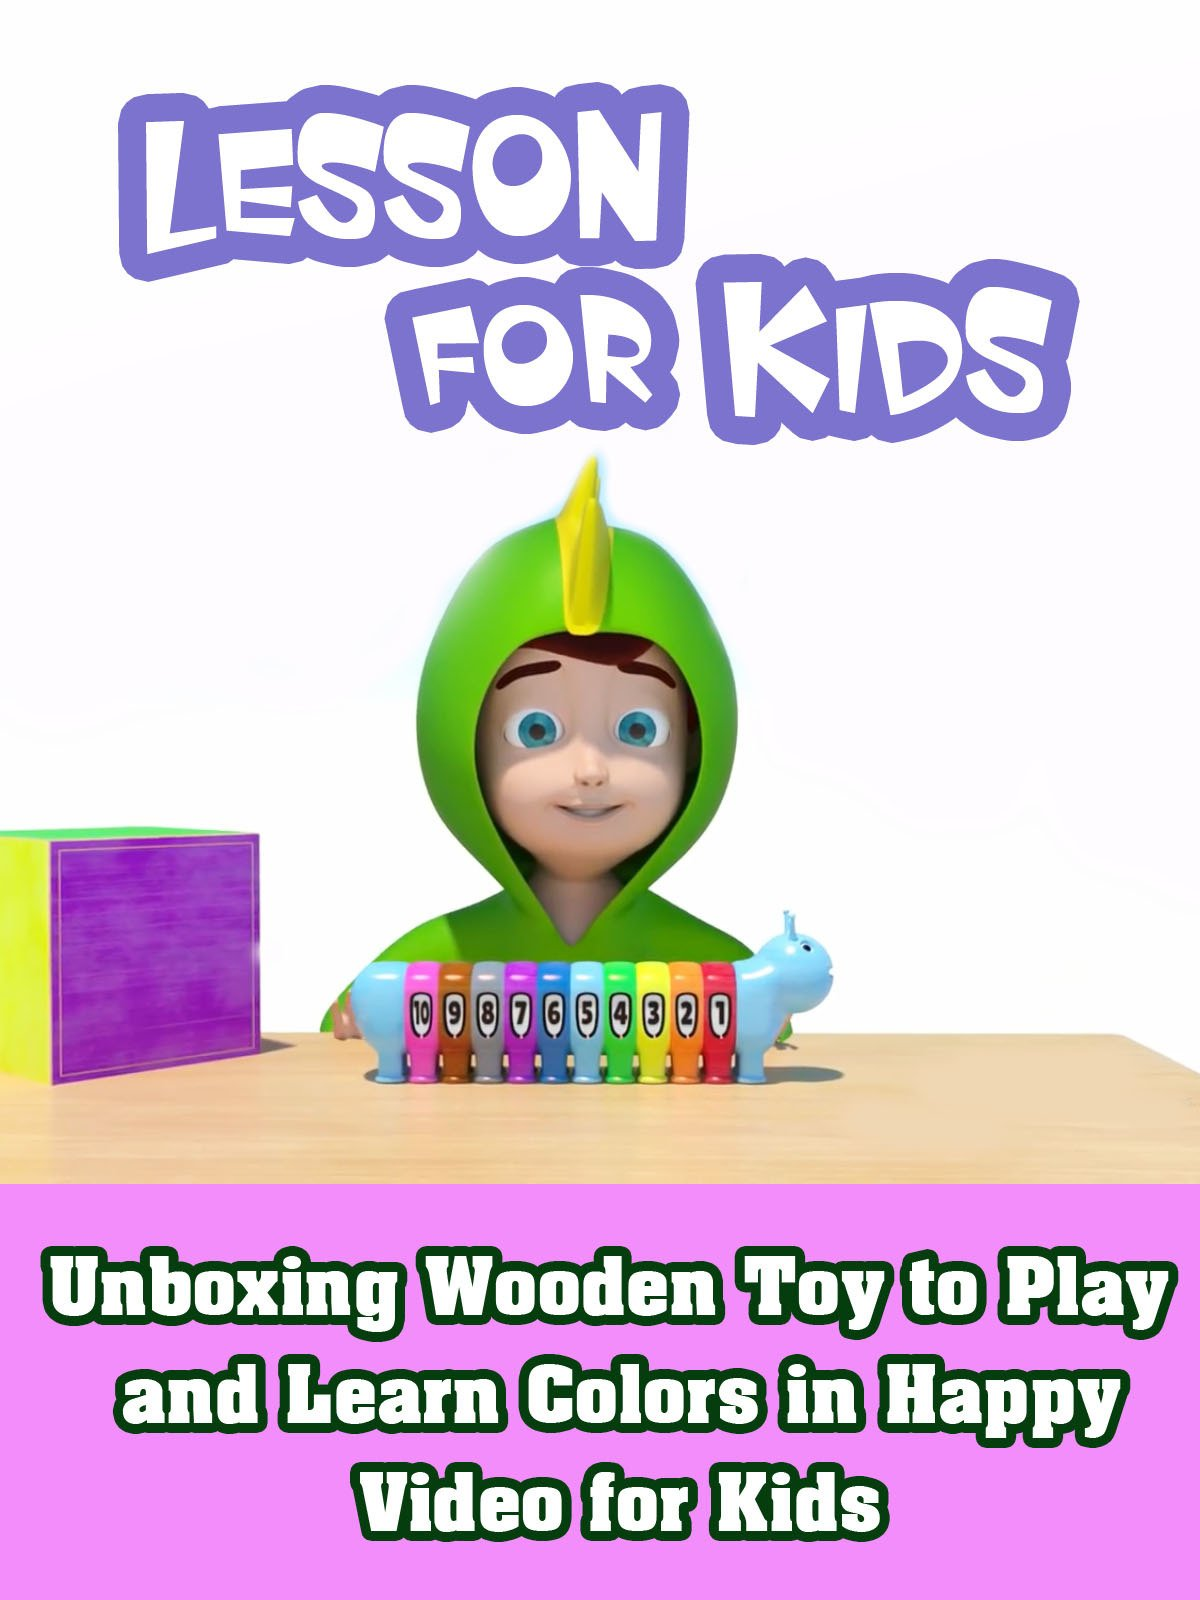 Unboxing Wooden Toy to Play and Learn Colors in Happy Video for Kids